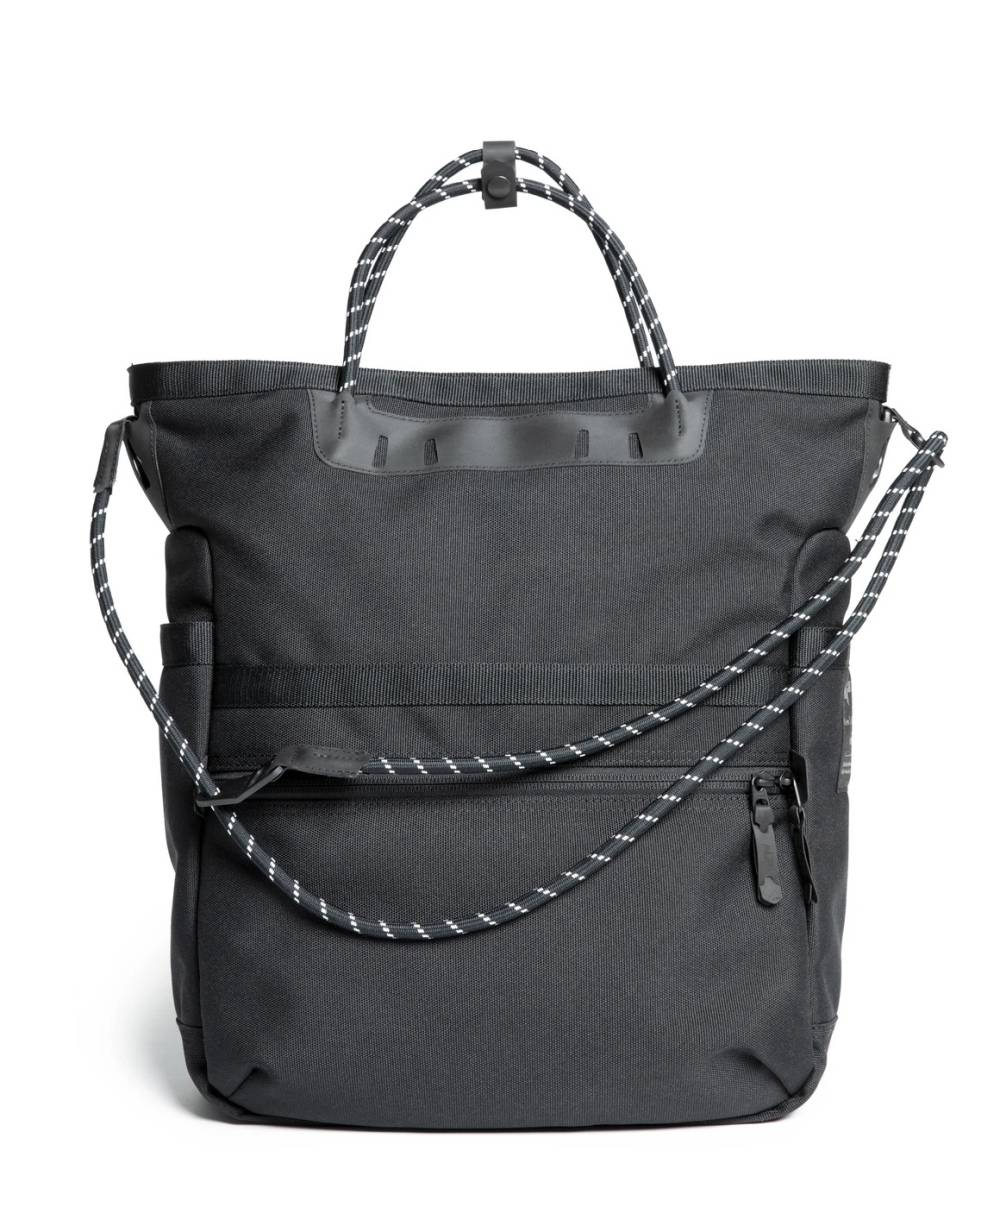 outerknown affordable handbag recycled materials